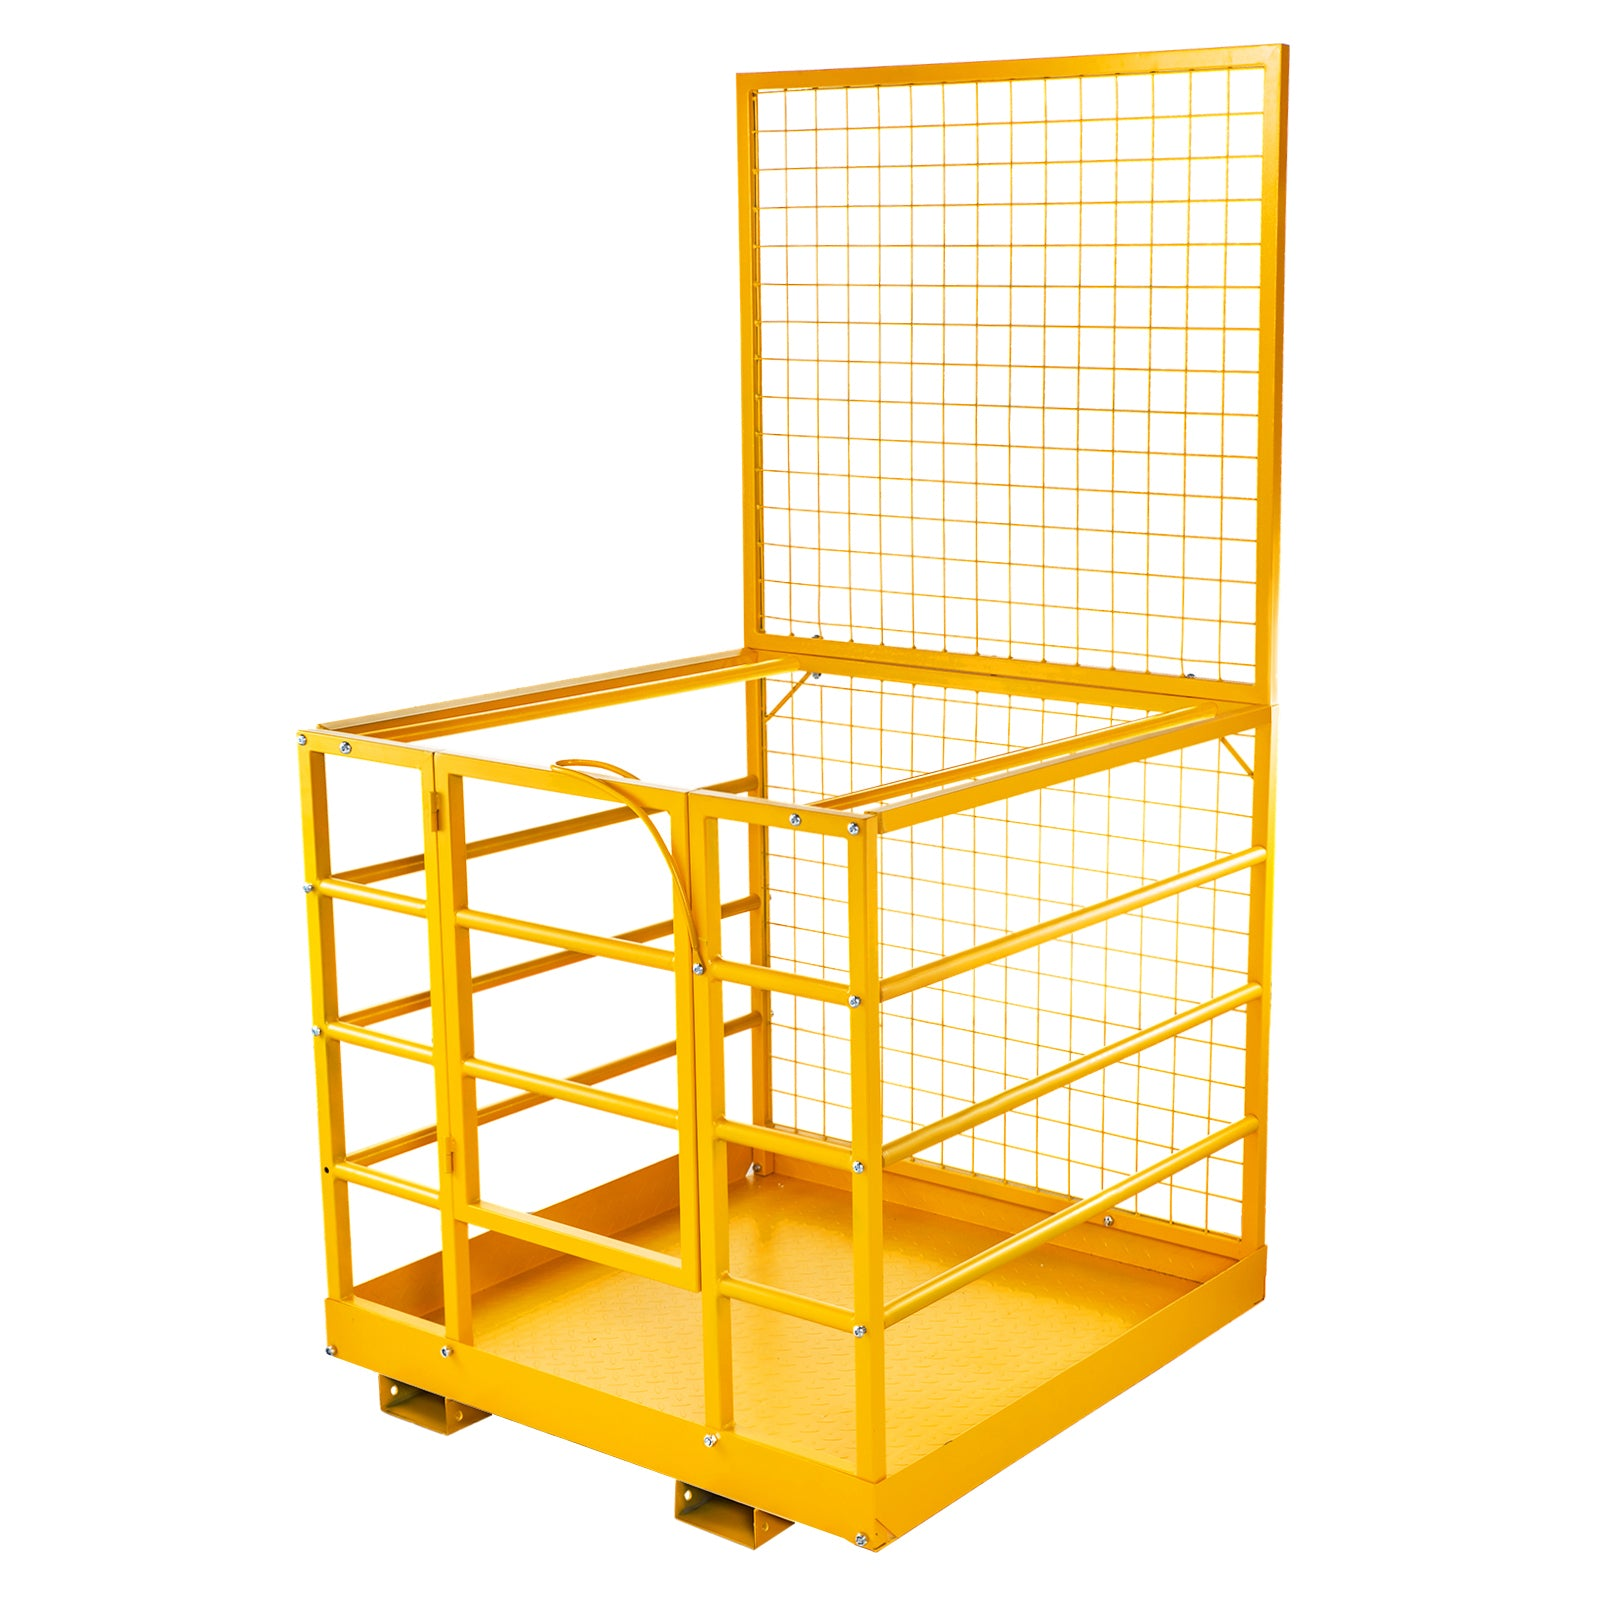 "45""'x43"" Forklift Work Platform Safety Cage Platform Protection Rust-free"